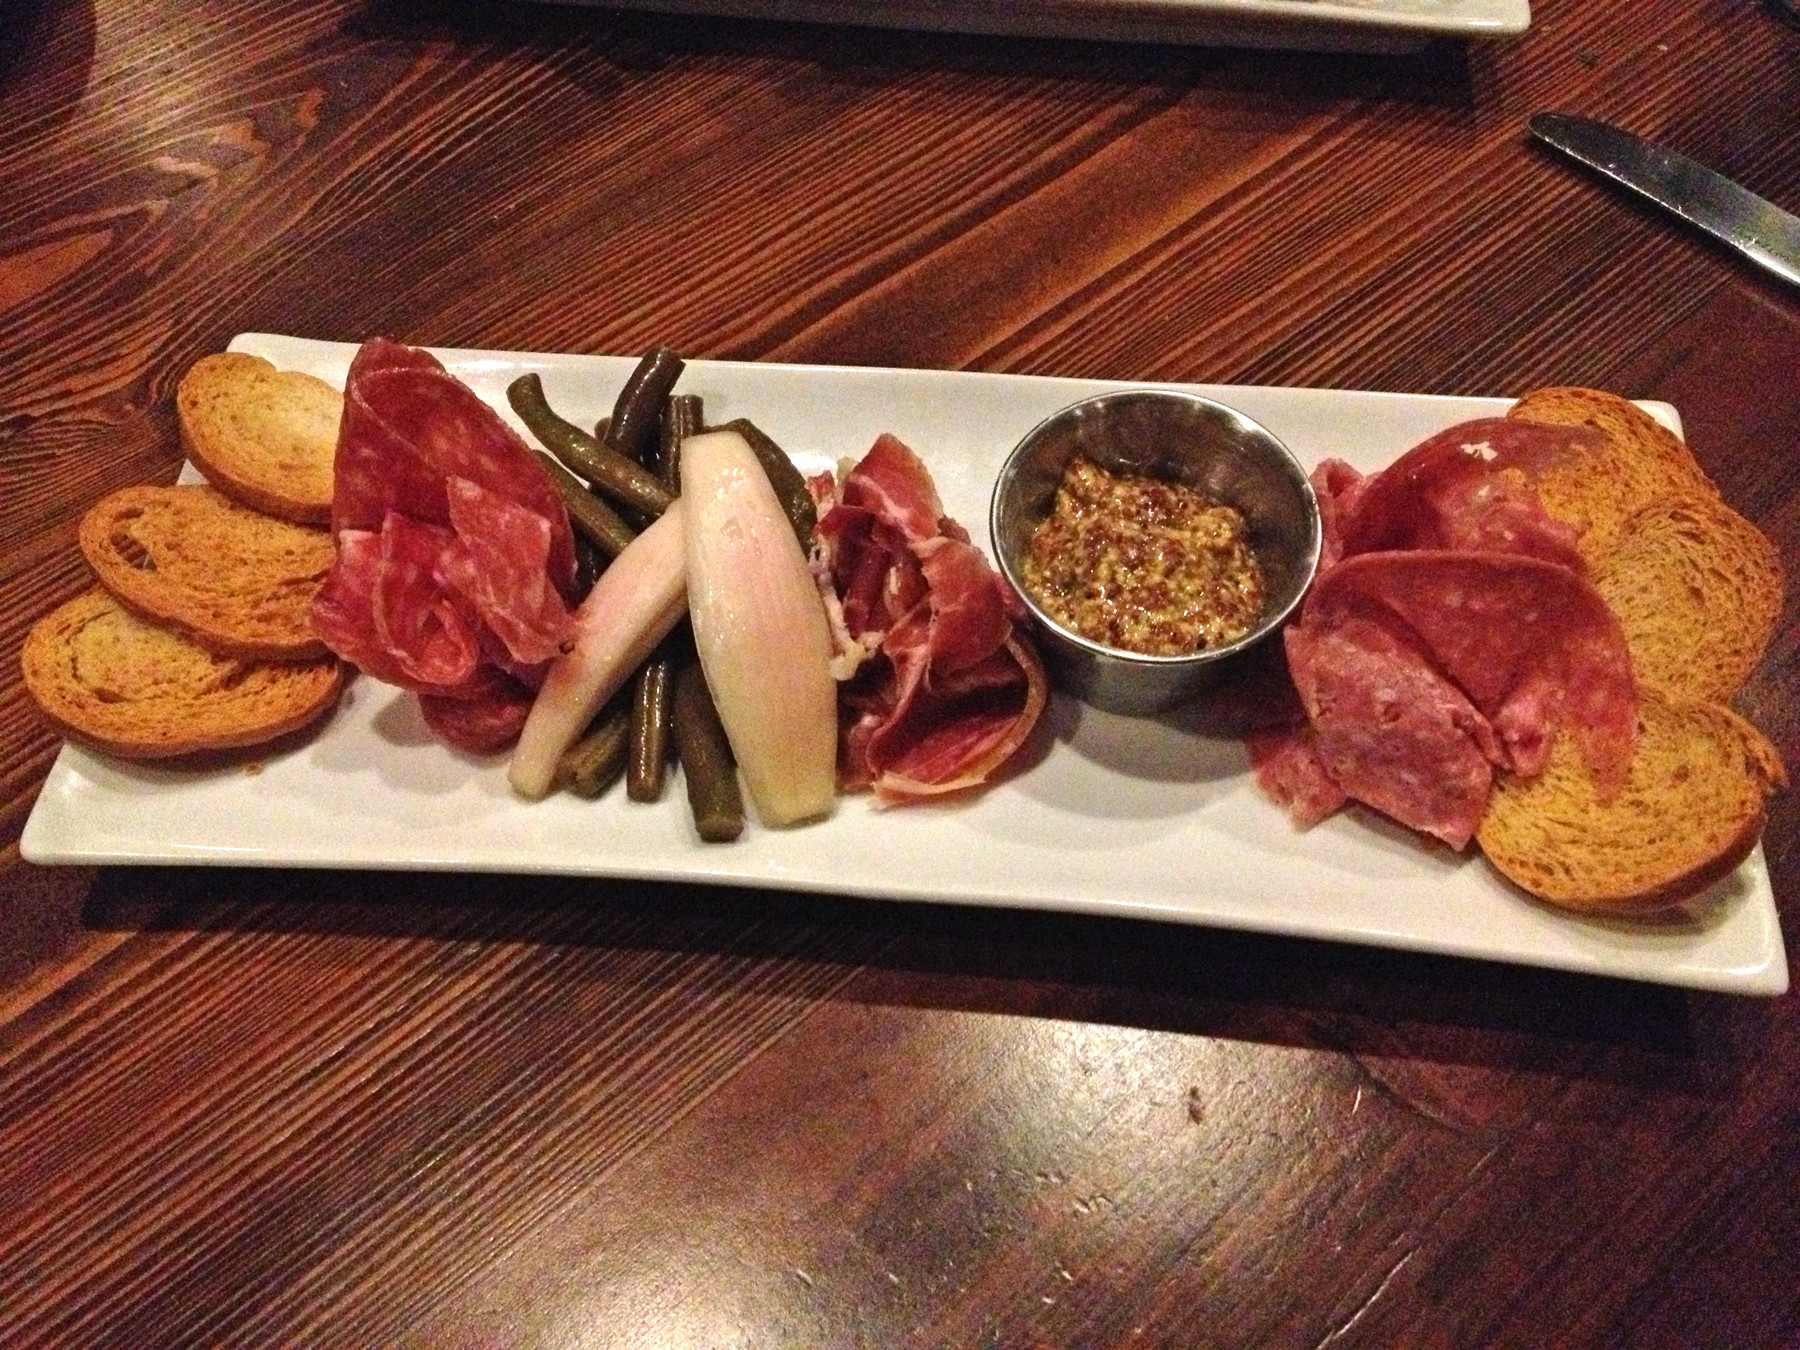 The charcuterie pairs toasted crostini with thin slices of dry-cured Serrano ham, soppressata and Genoa salami, tangy homemade pickled green beans and onions, and a spicy French Maille whole grain mustard.